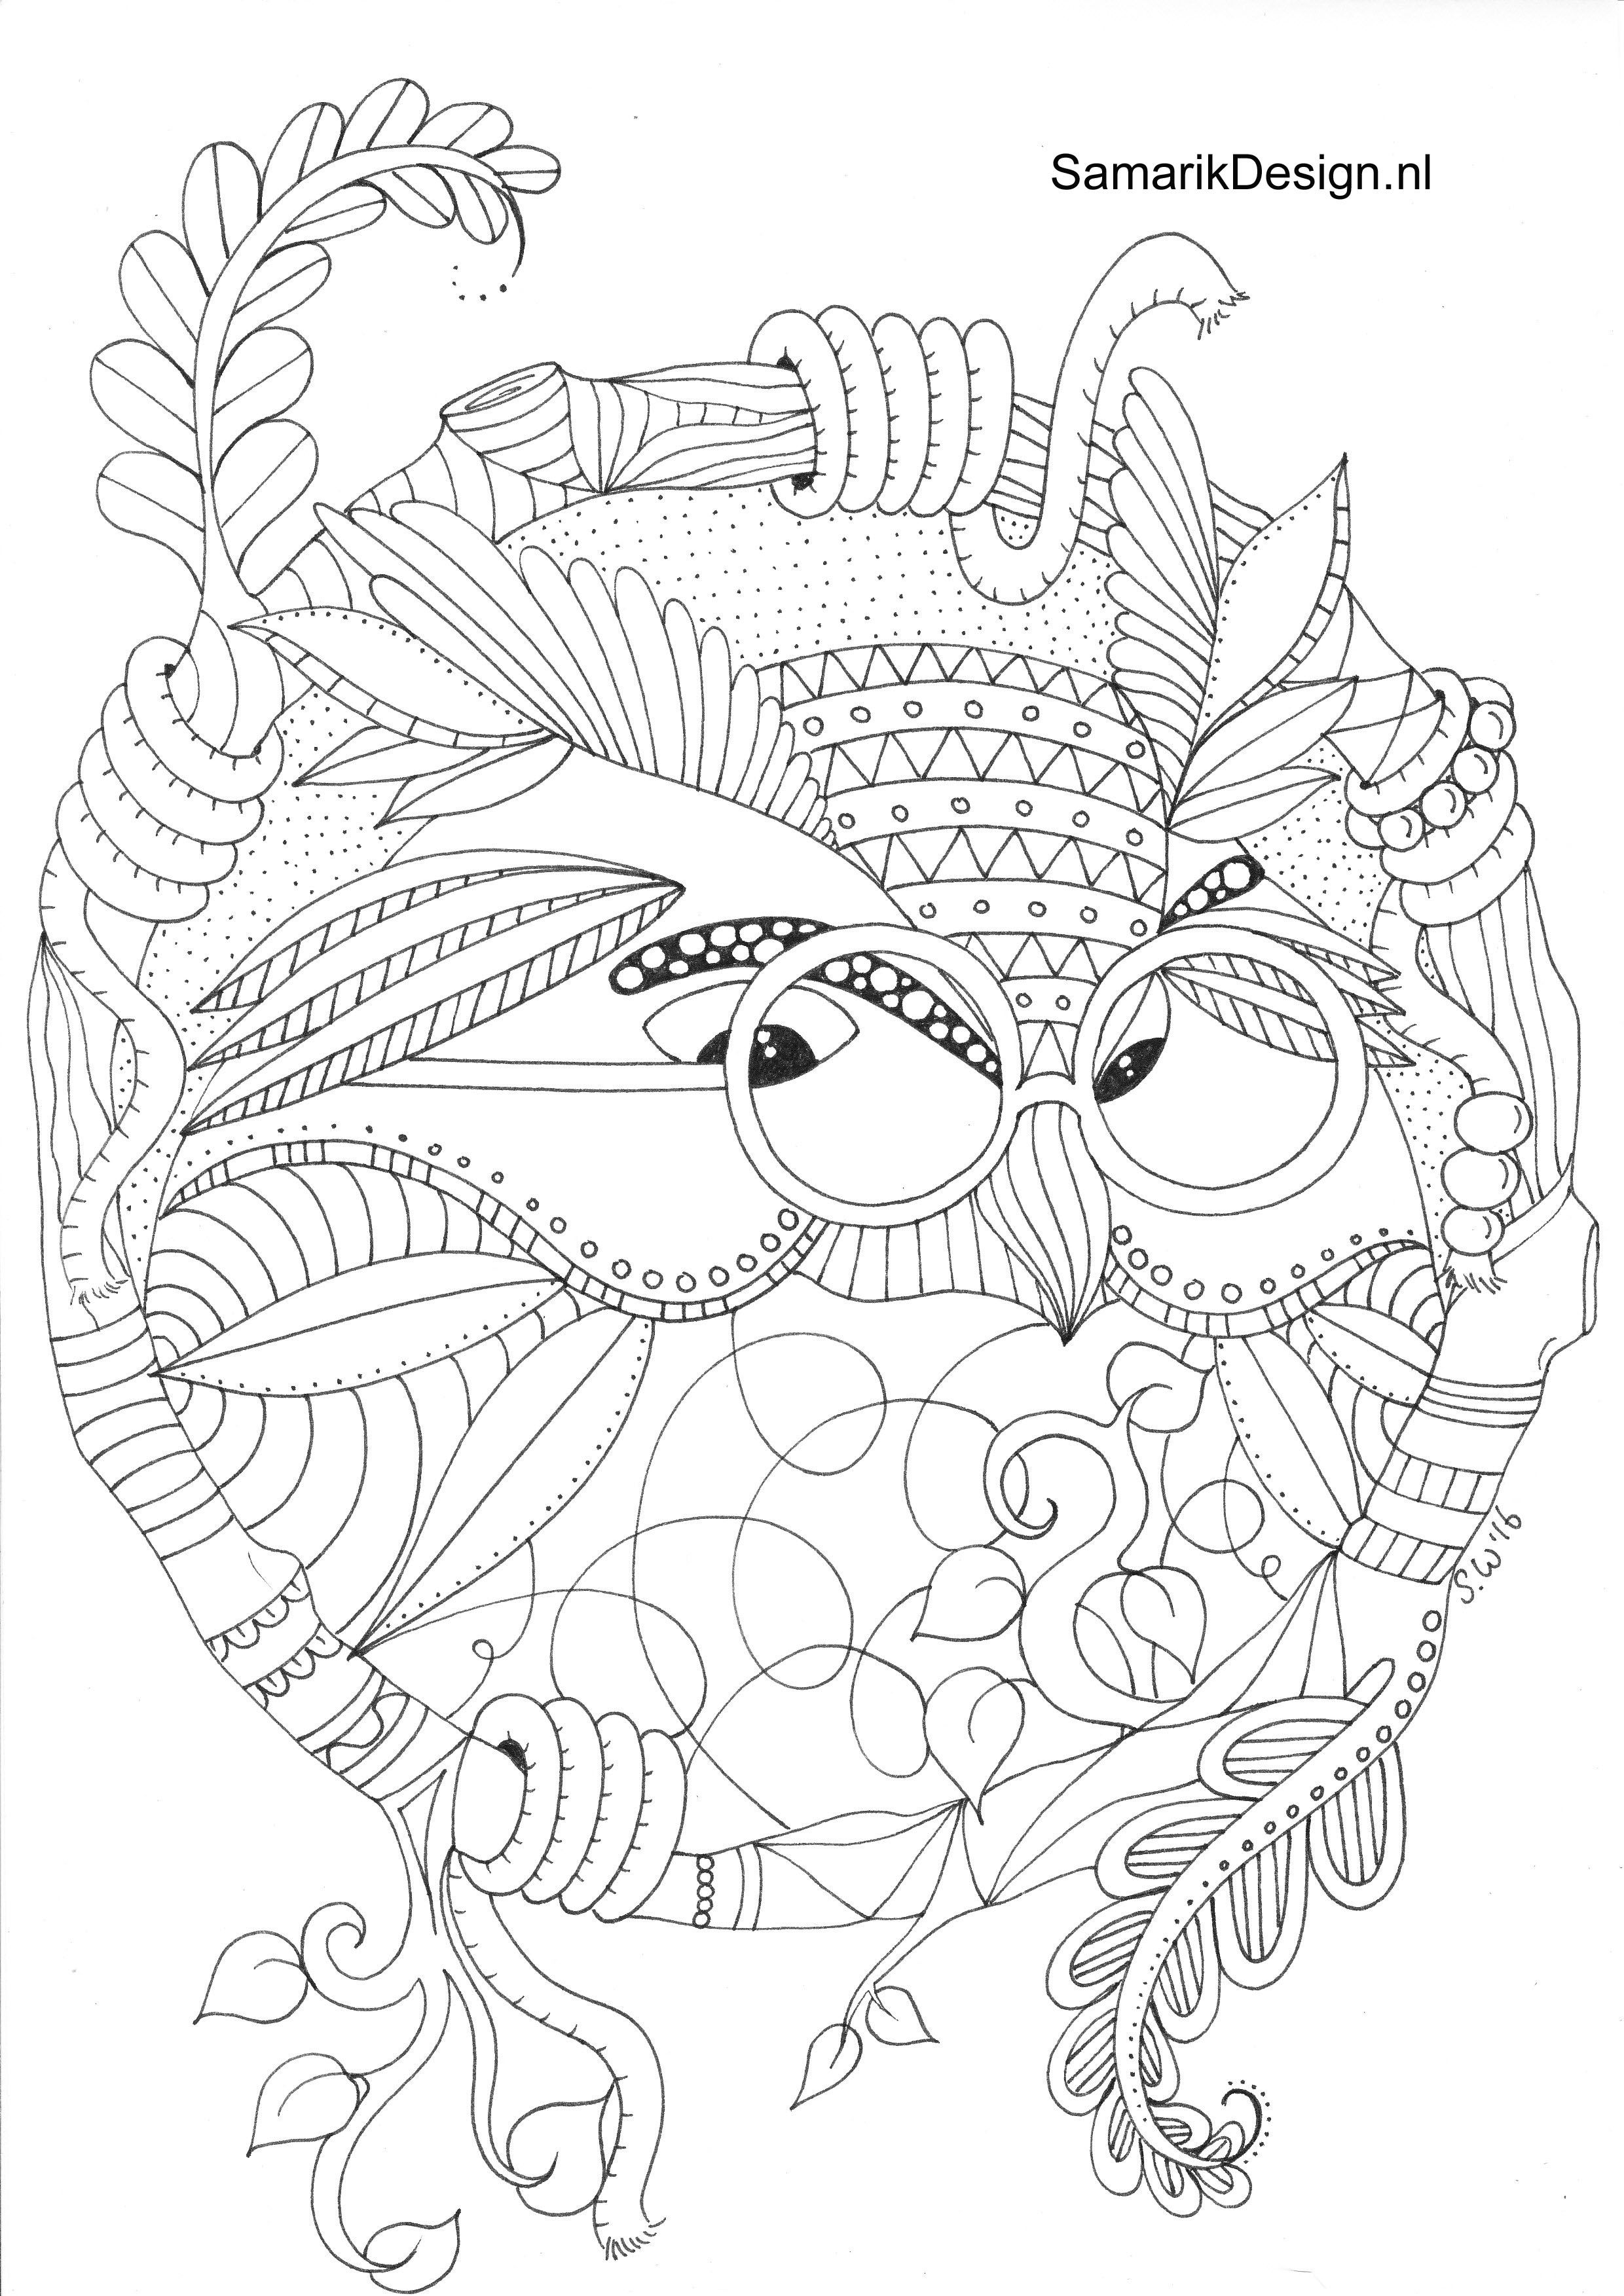 Owl Doodle Coloring Page Owl Coloring Pages Animal Coloring